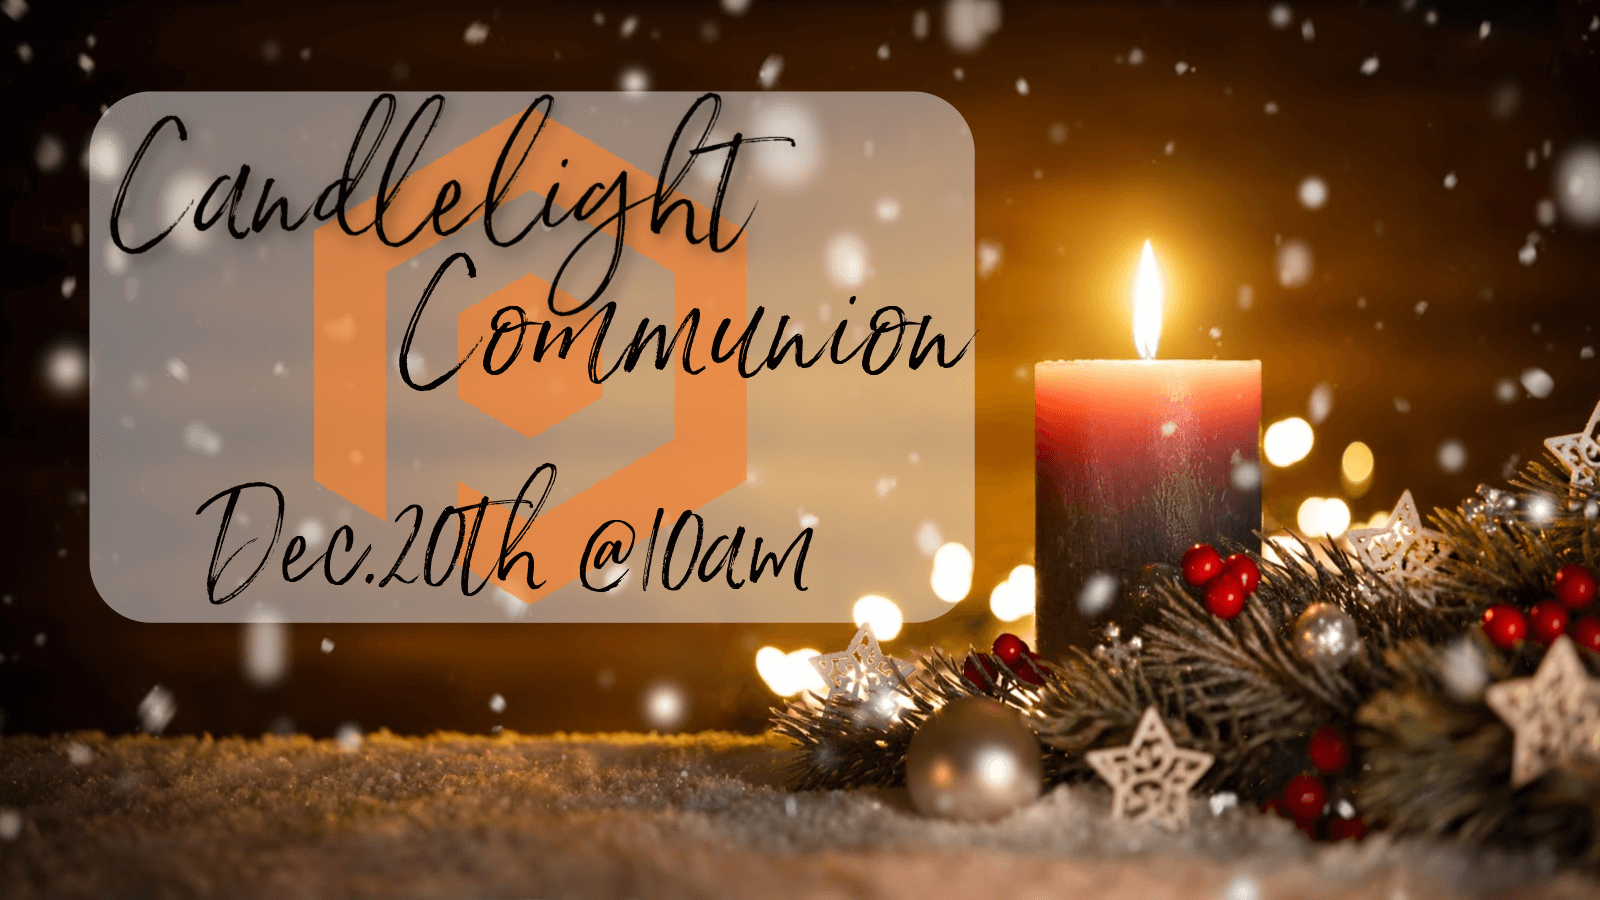 Candlelight and communion flyer